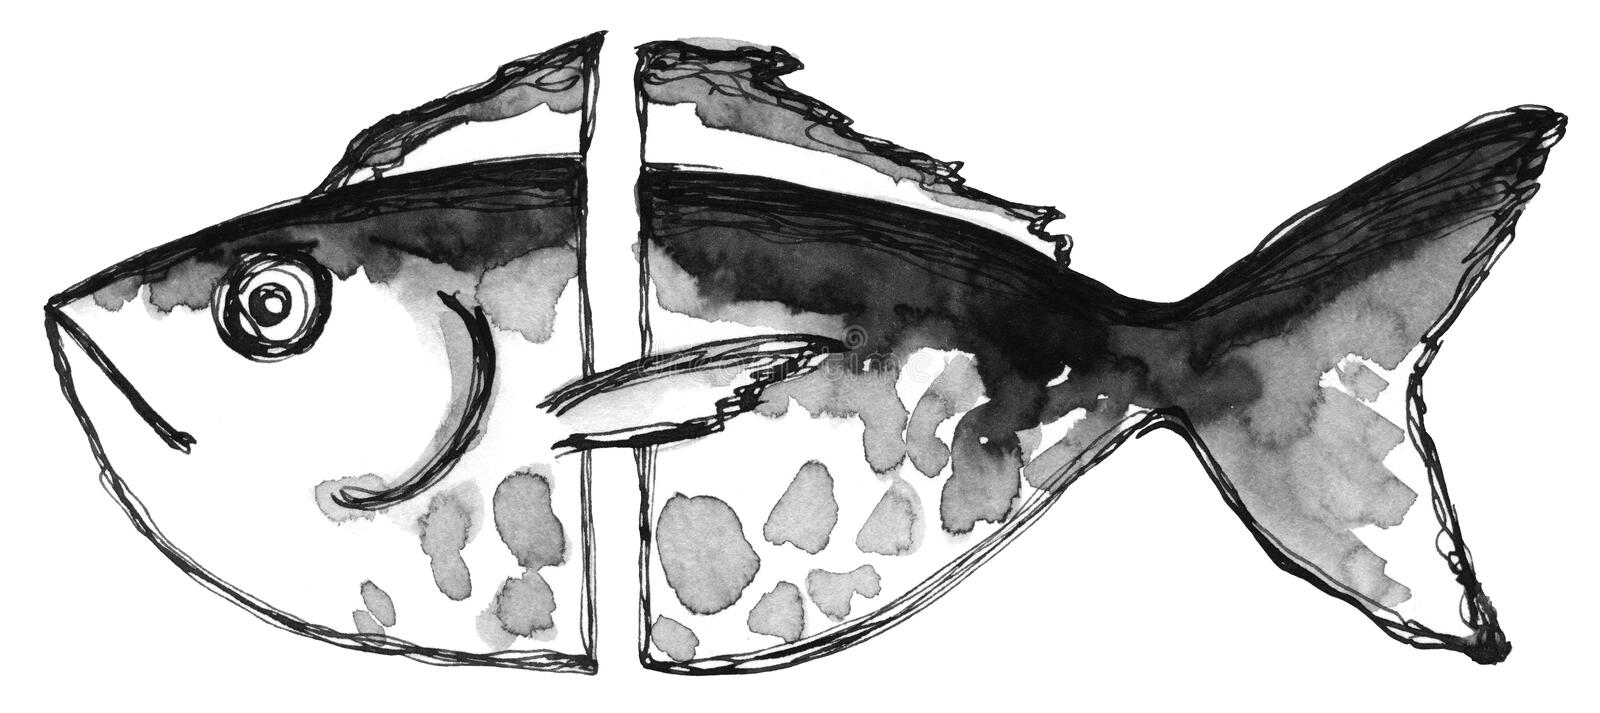 Hand drawing ink and feather black and white abstract fish. Texture spots and stripes royalty free illustration